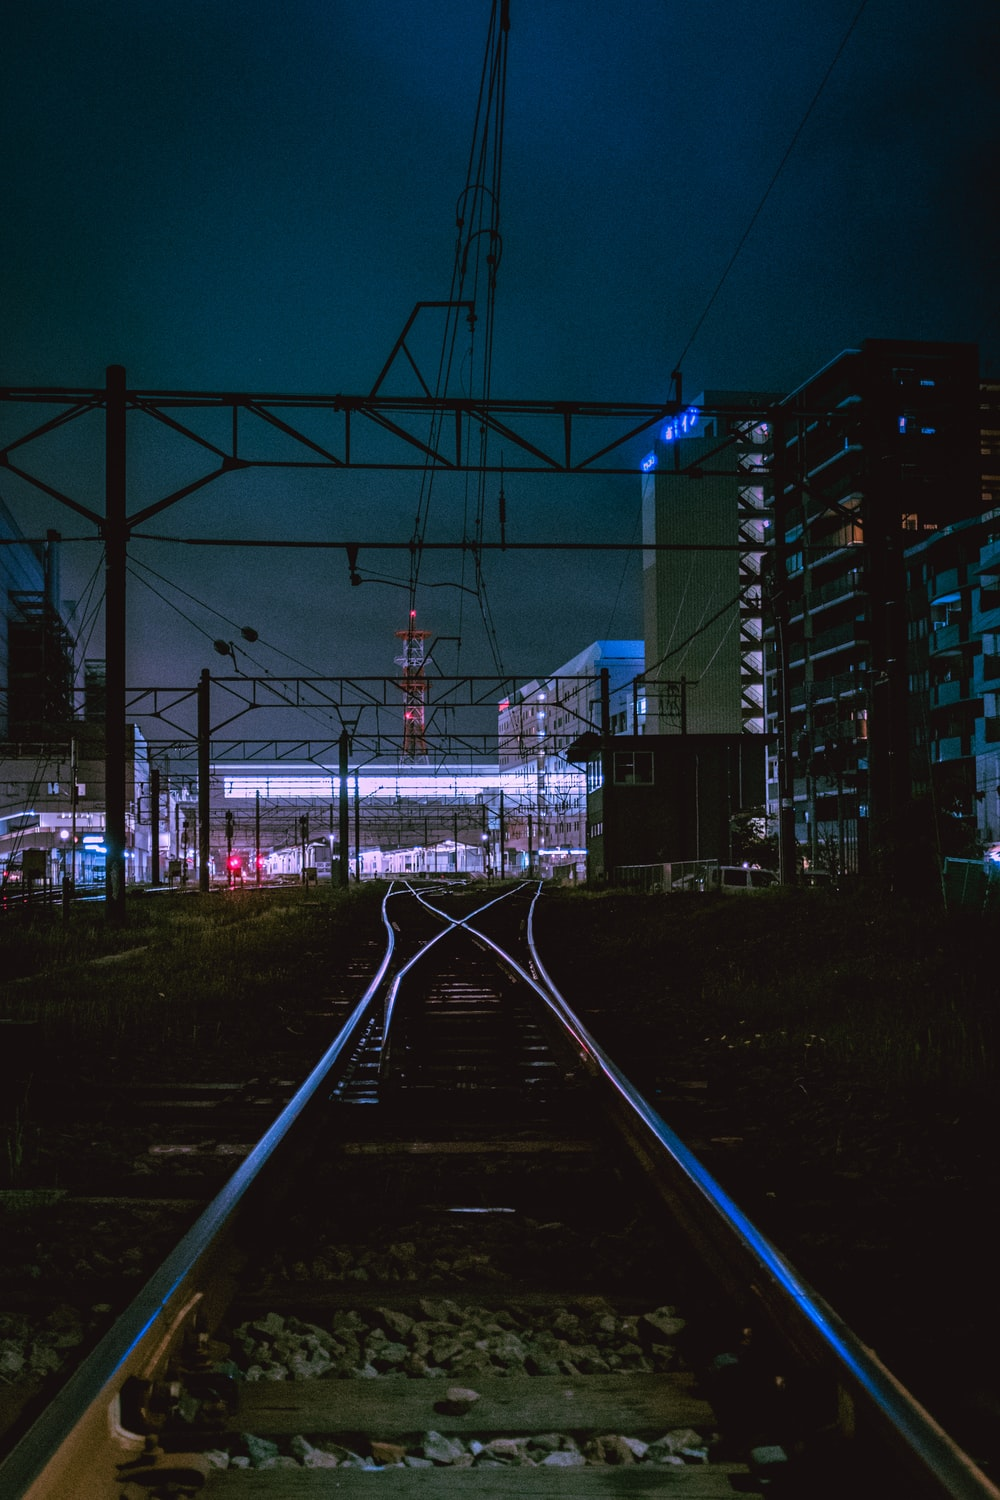 train rail with blue lights